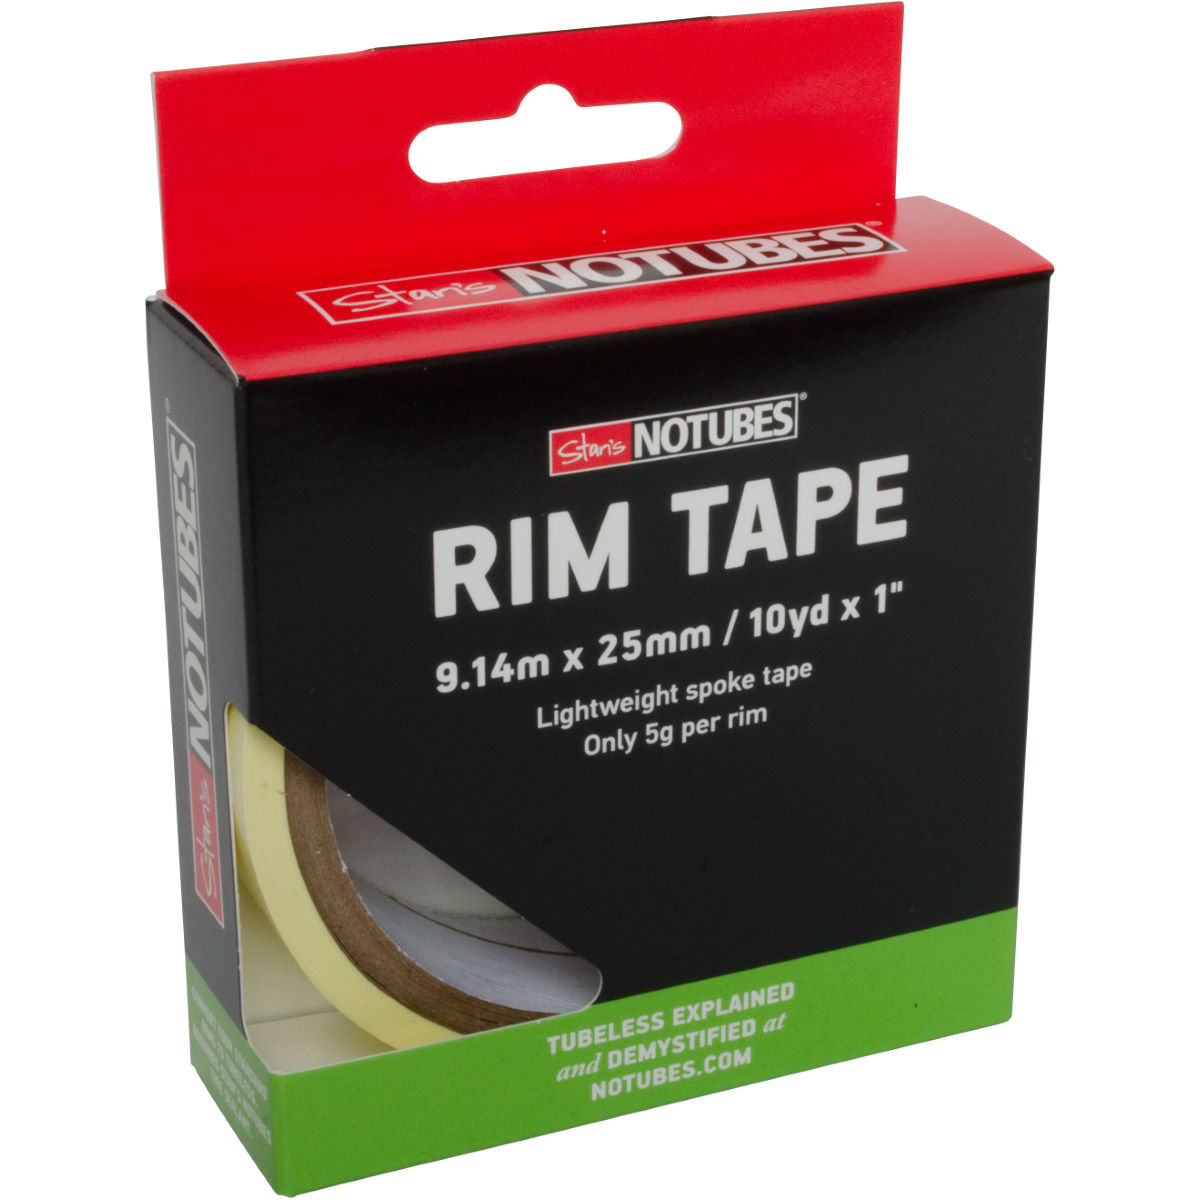 Stans No Tubes Tubeless Rim Tape - 9m X 25mm  Wheel Spares